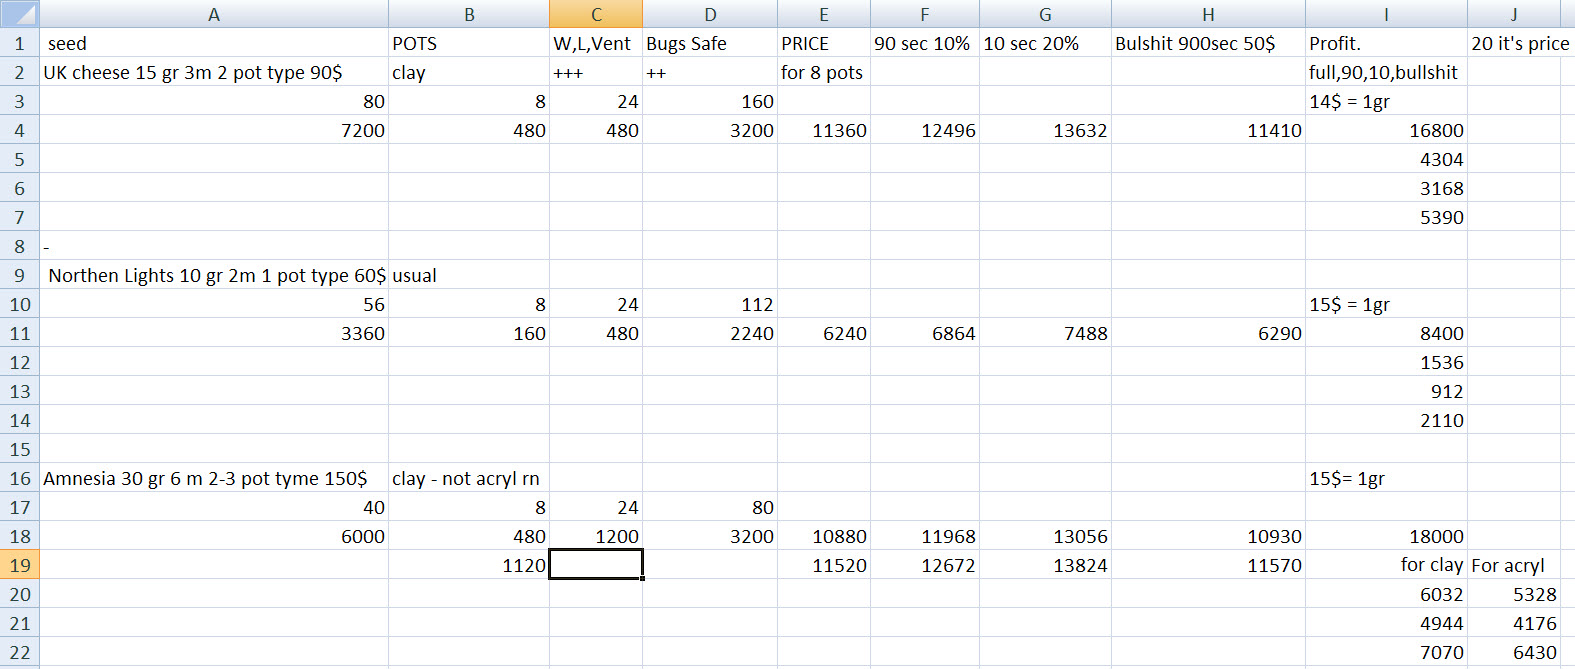 Table about seeds profitable image 1